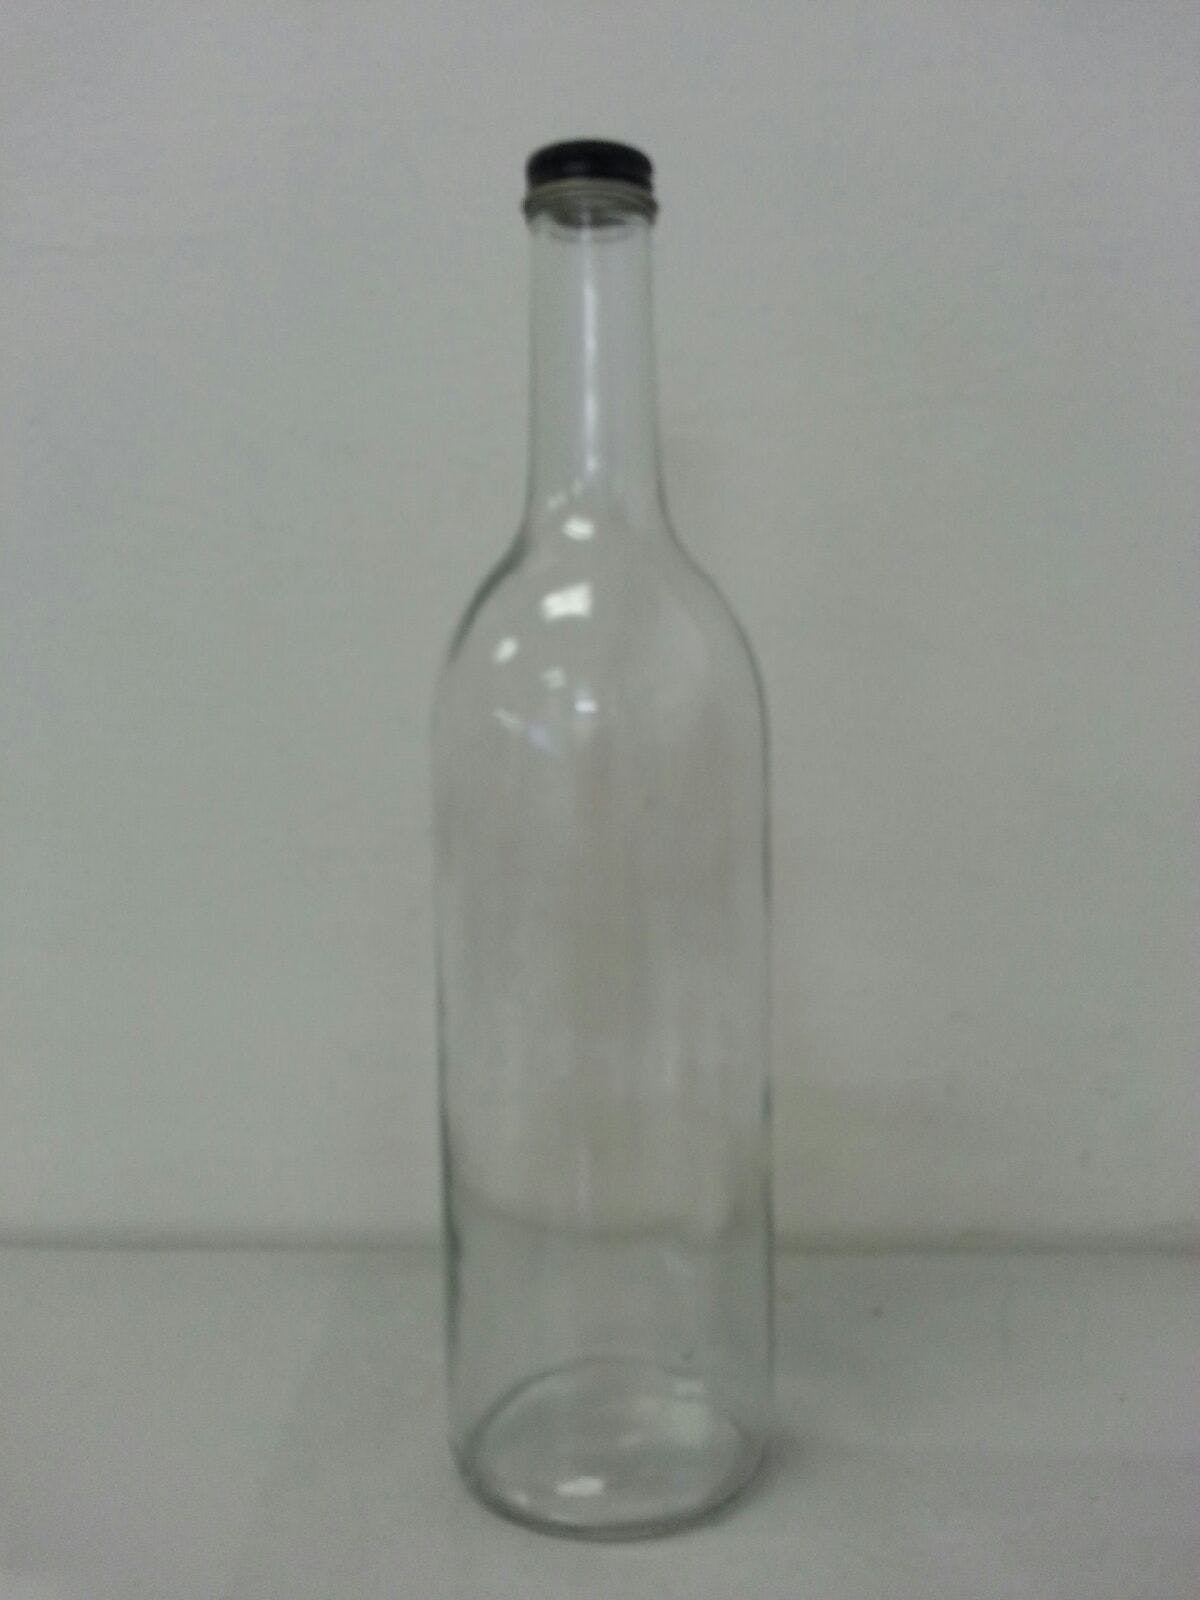 750ML FLAT BOTTOM BORDEAUX 12 PK Liquor bottle sold by Bottle Solutions